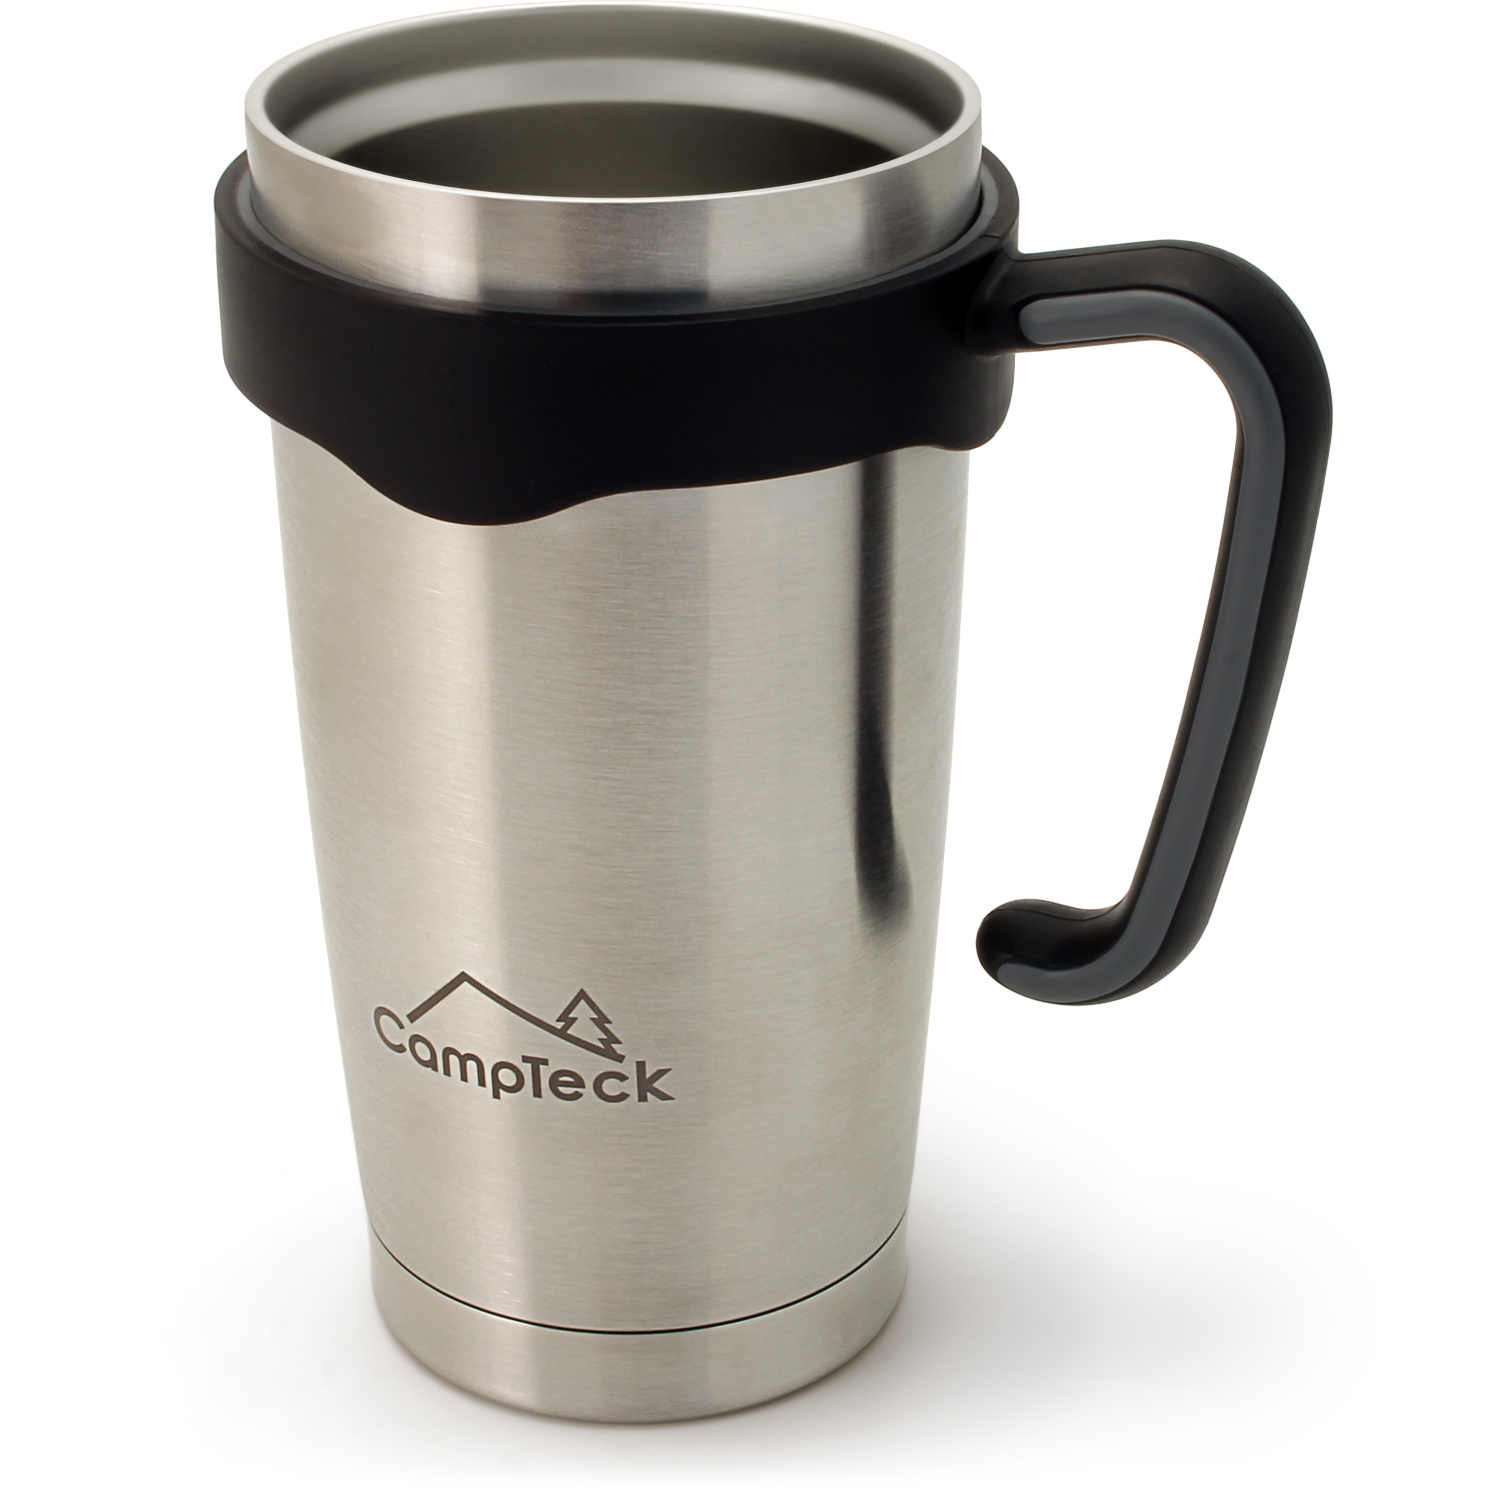 CampTeck 600ml/20.3Oz Thermos Cup Double Wall Vacuum Stainless Steel Insulated Tumbler for Cold & Hot Drinks ? Silver